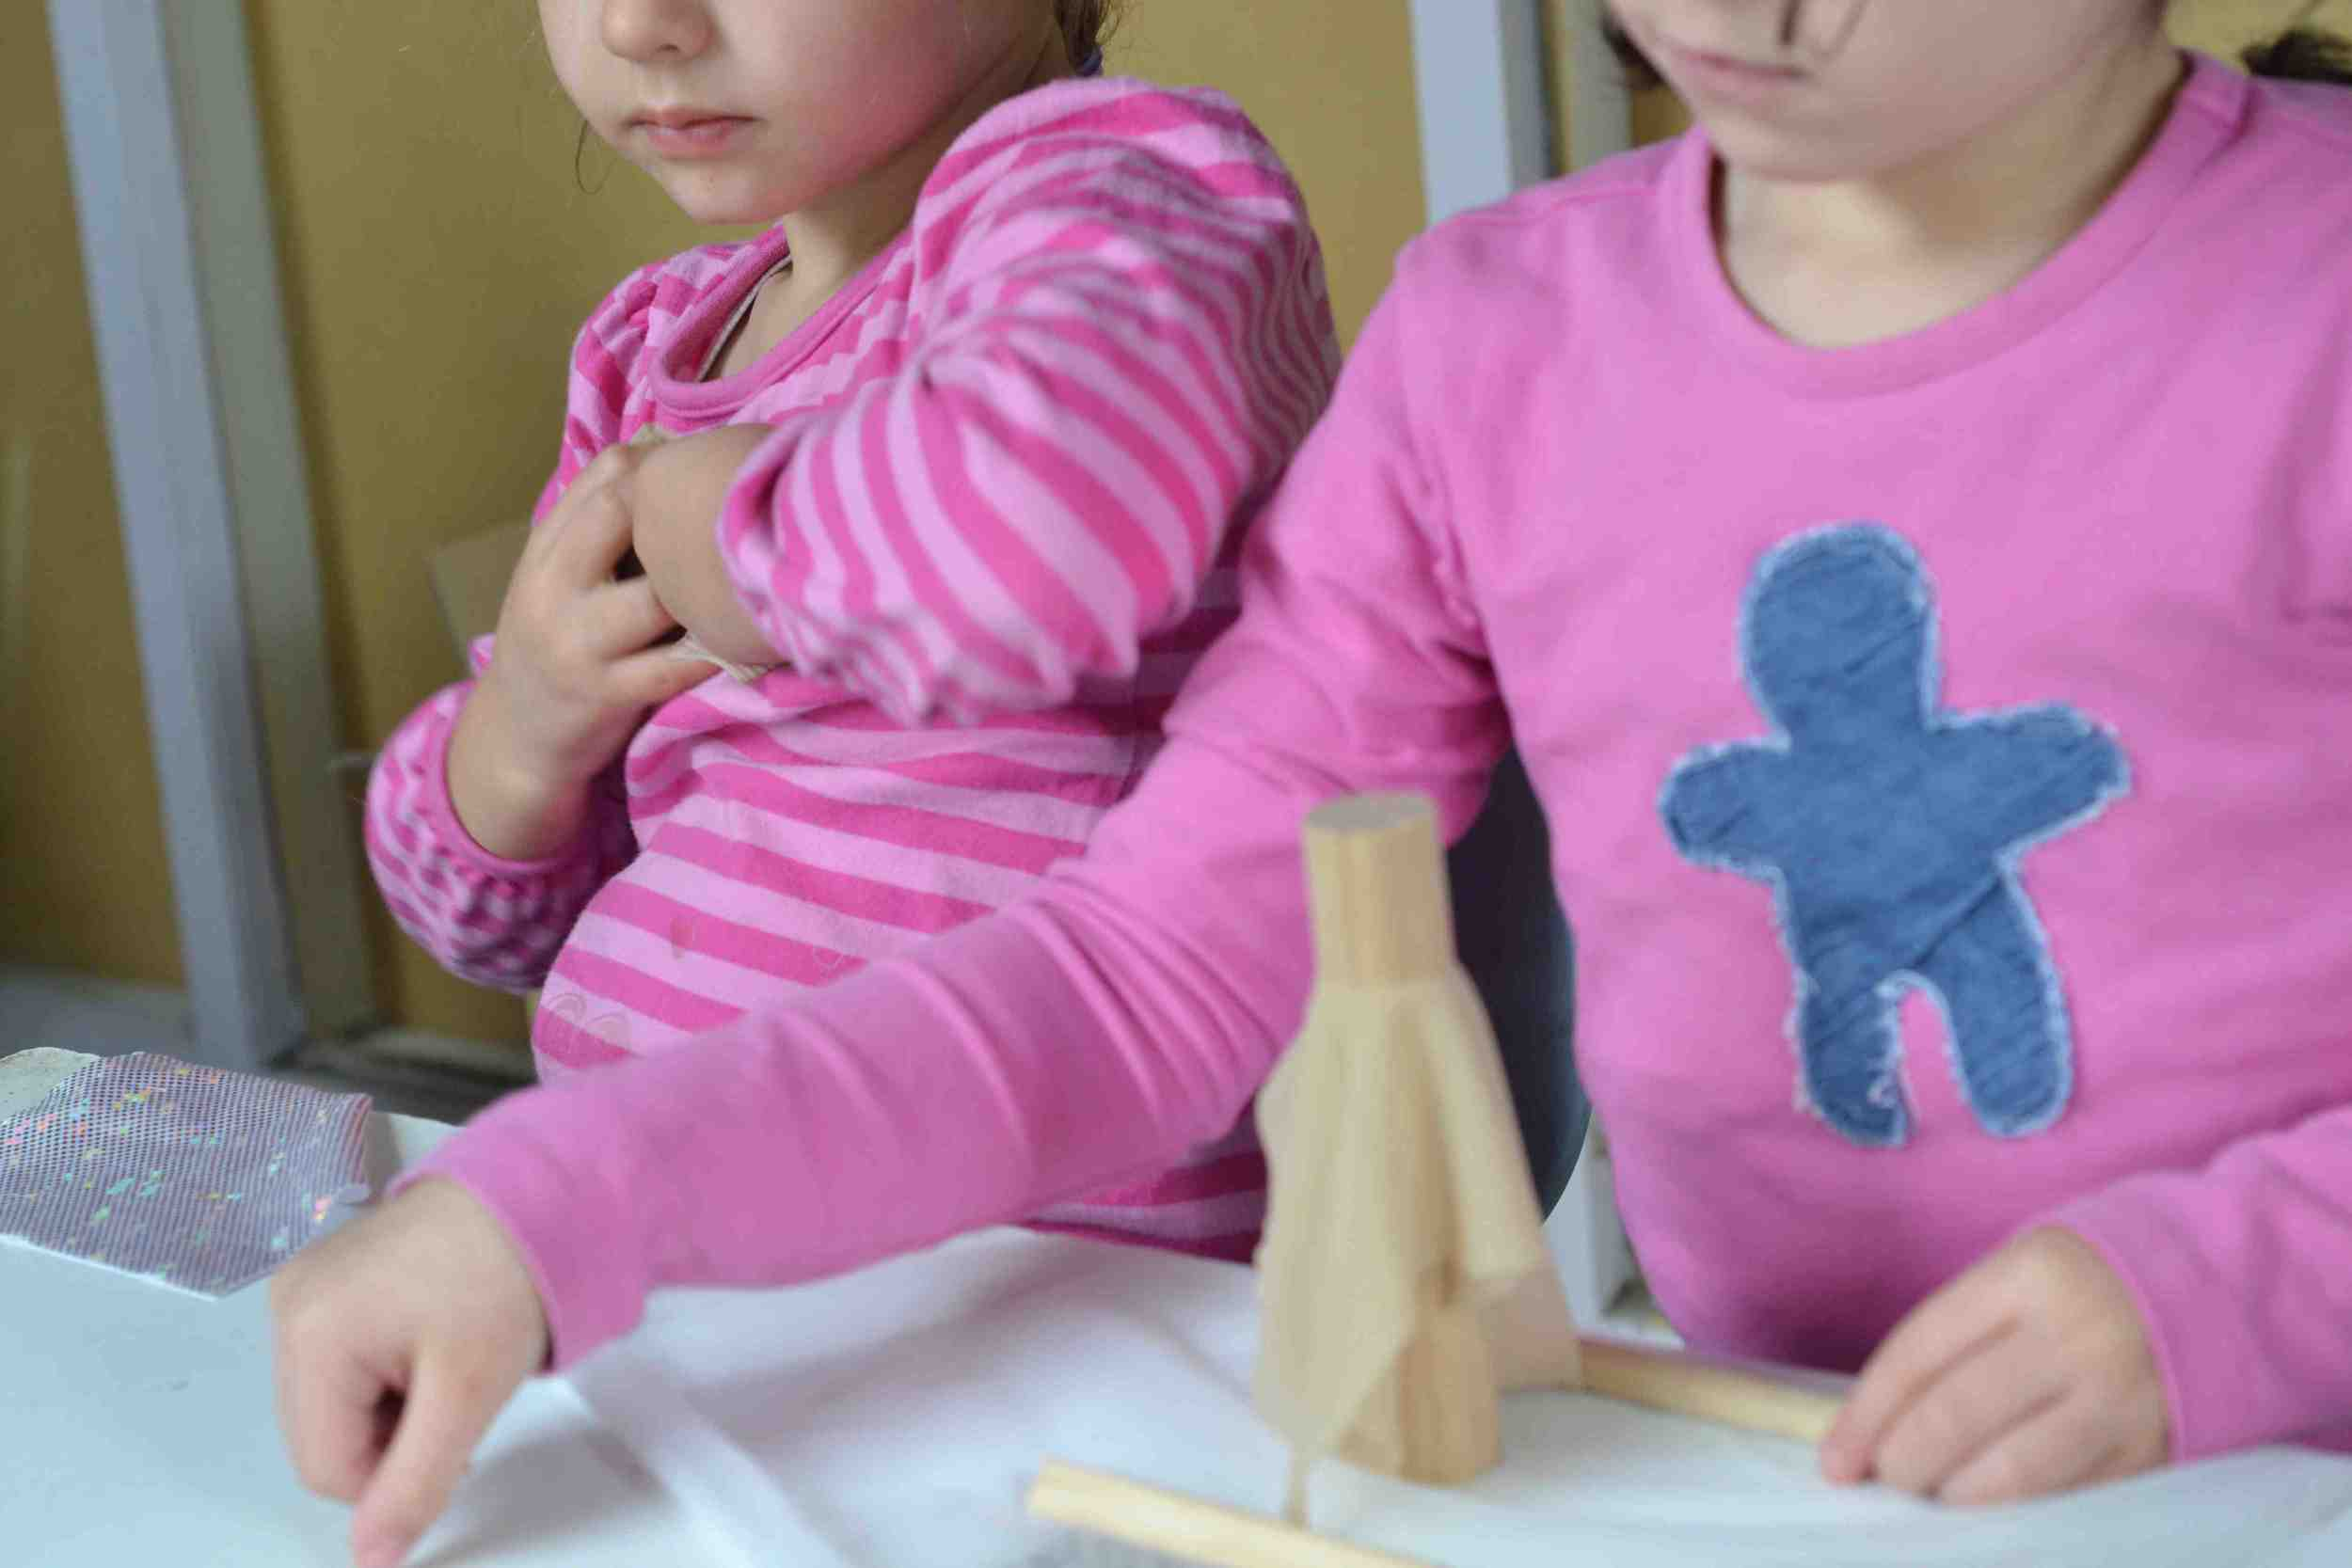 B:The start of children's use with dowels